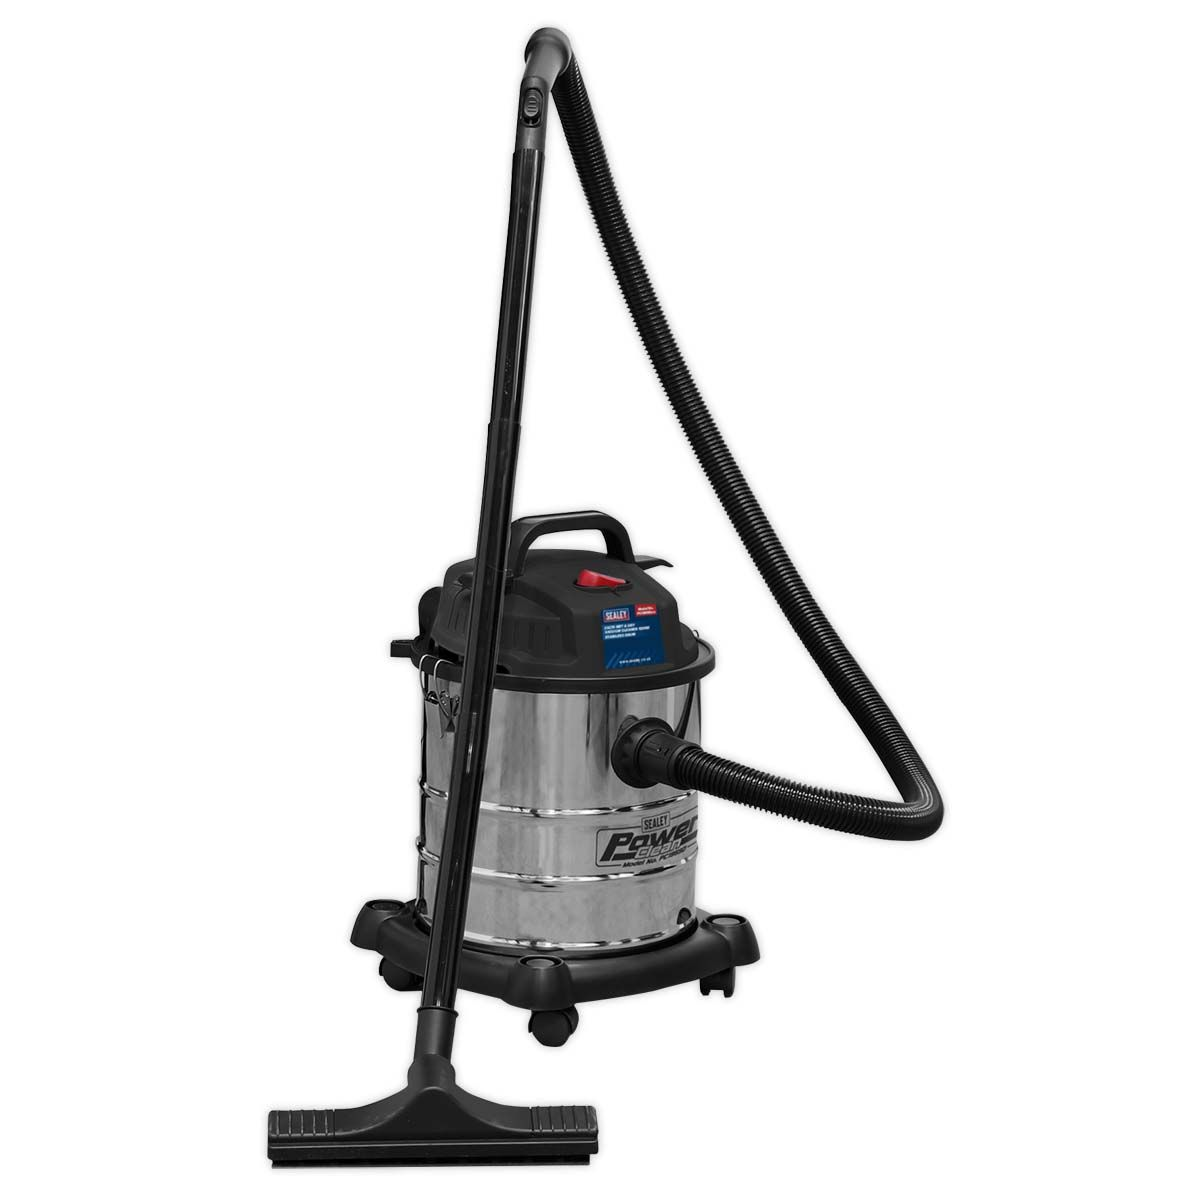 Sealey Vacuum Cleaner Wet & Dry 20L 1200W/230V Stainless Drum